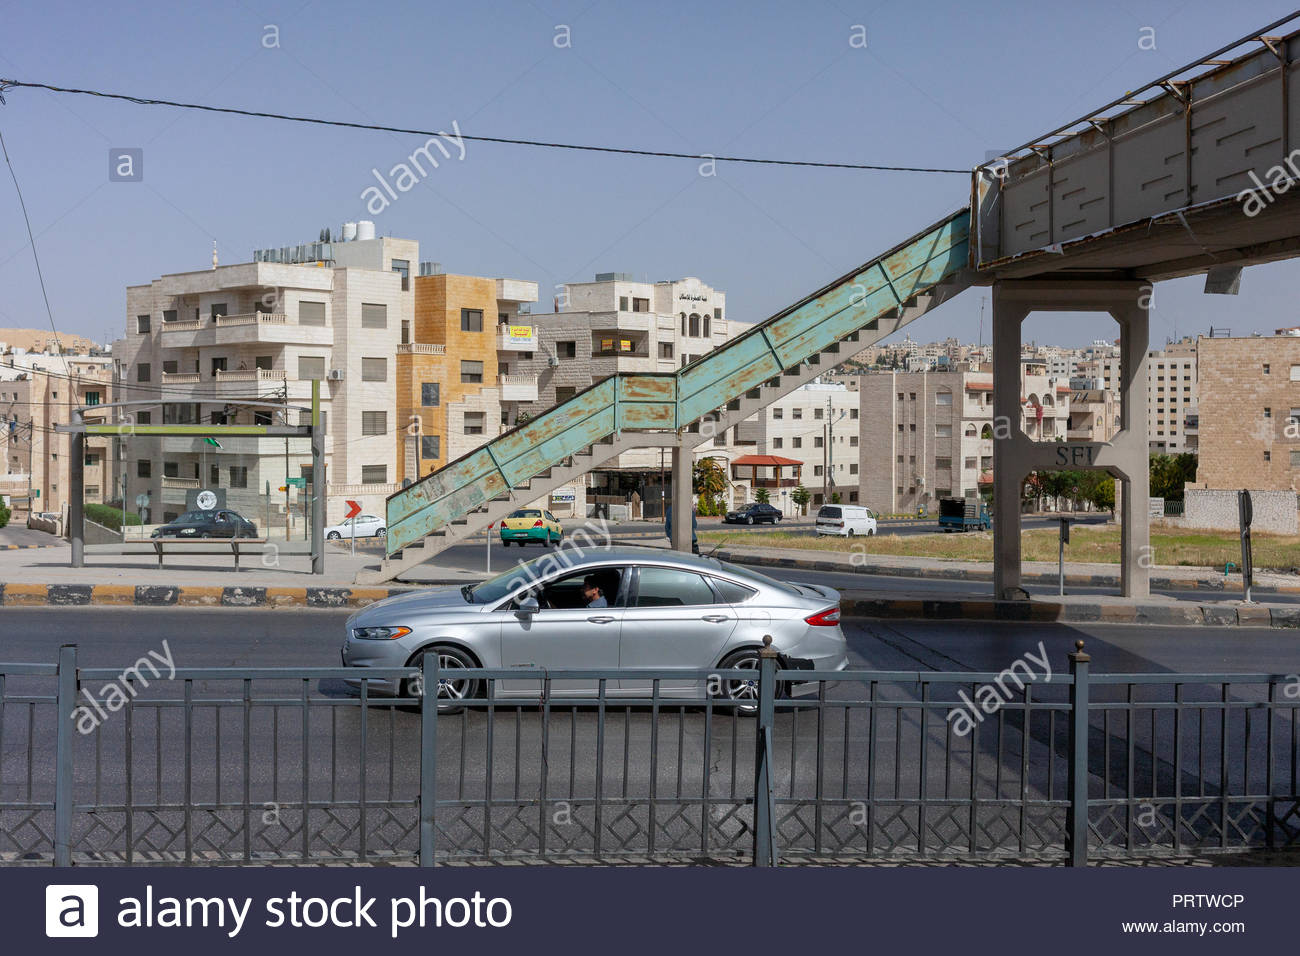 Electric Highway Stock Photos & Electric Highway Stock